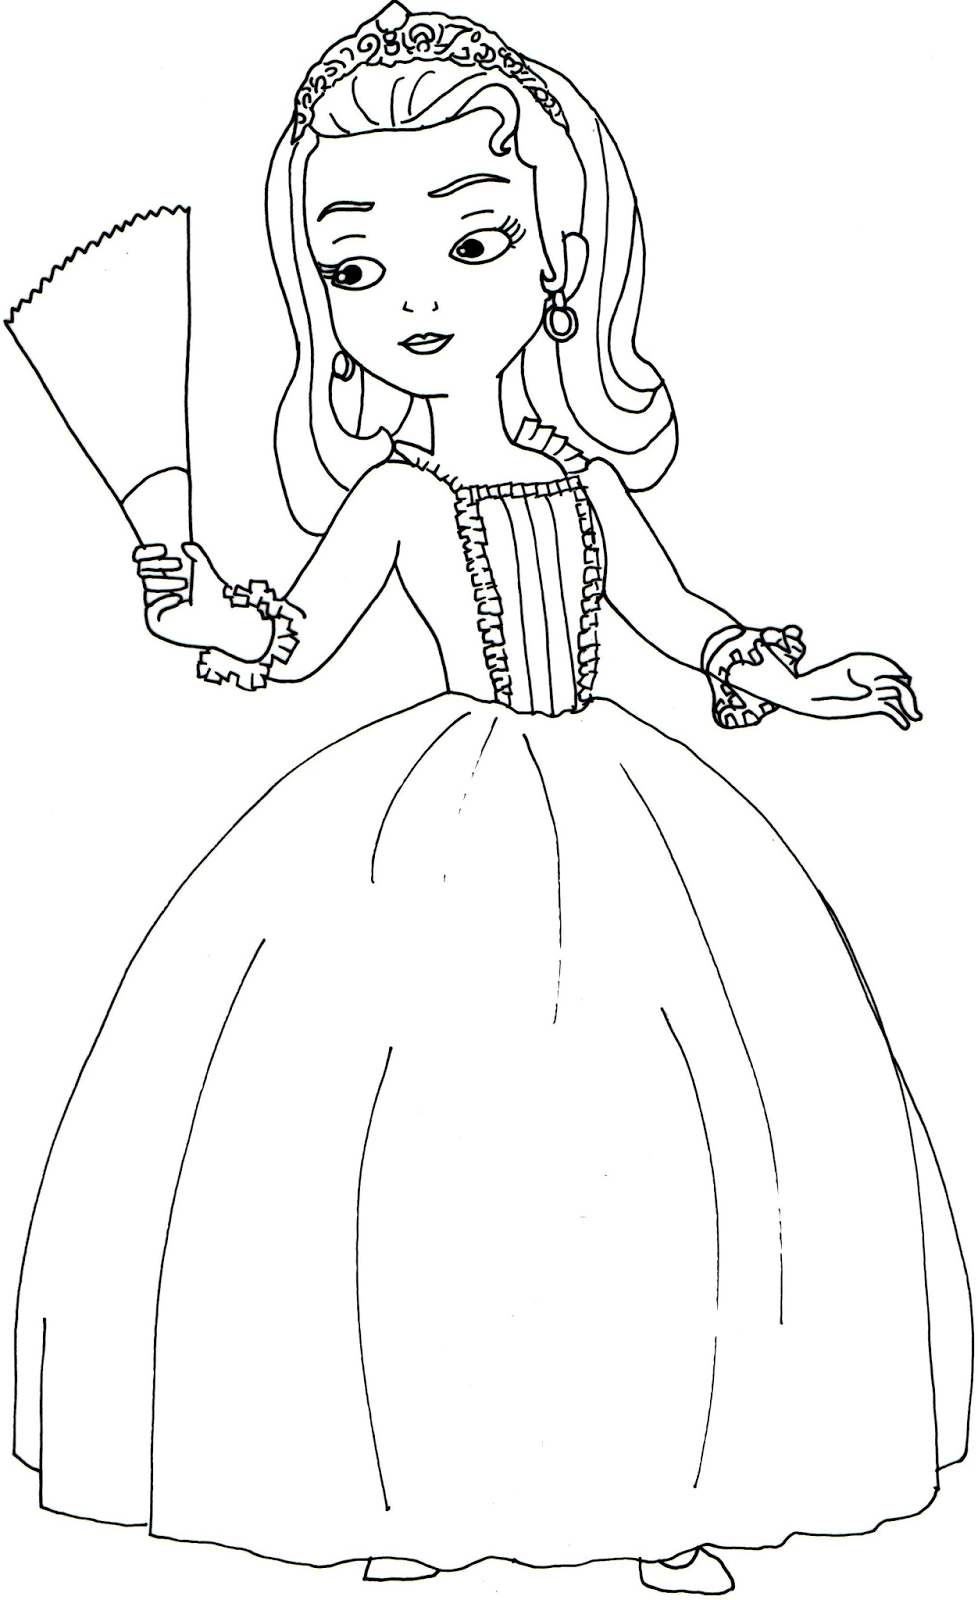 Sofia Coloring Pages Princess Sofia The First Coloring Pages Princess Coloring Pages Disney Coloring Pages Disney Coloring Pages Printables